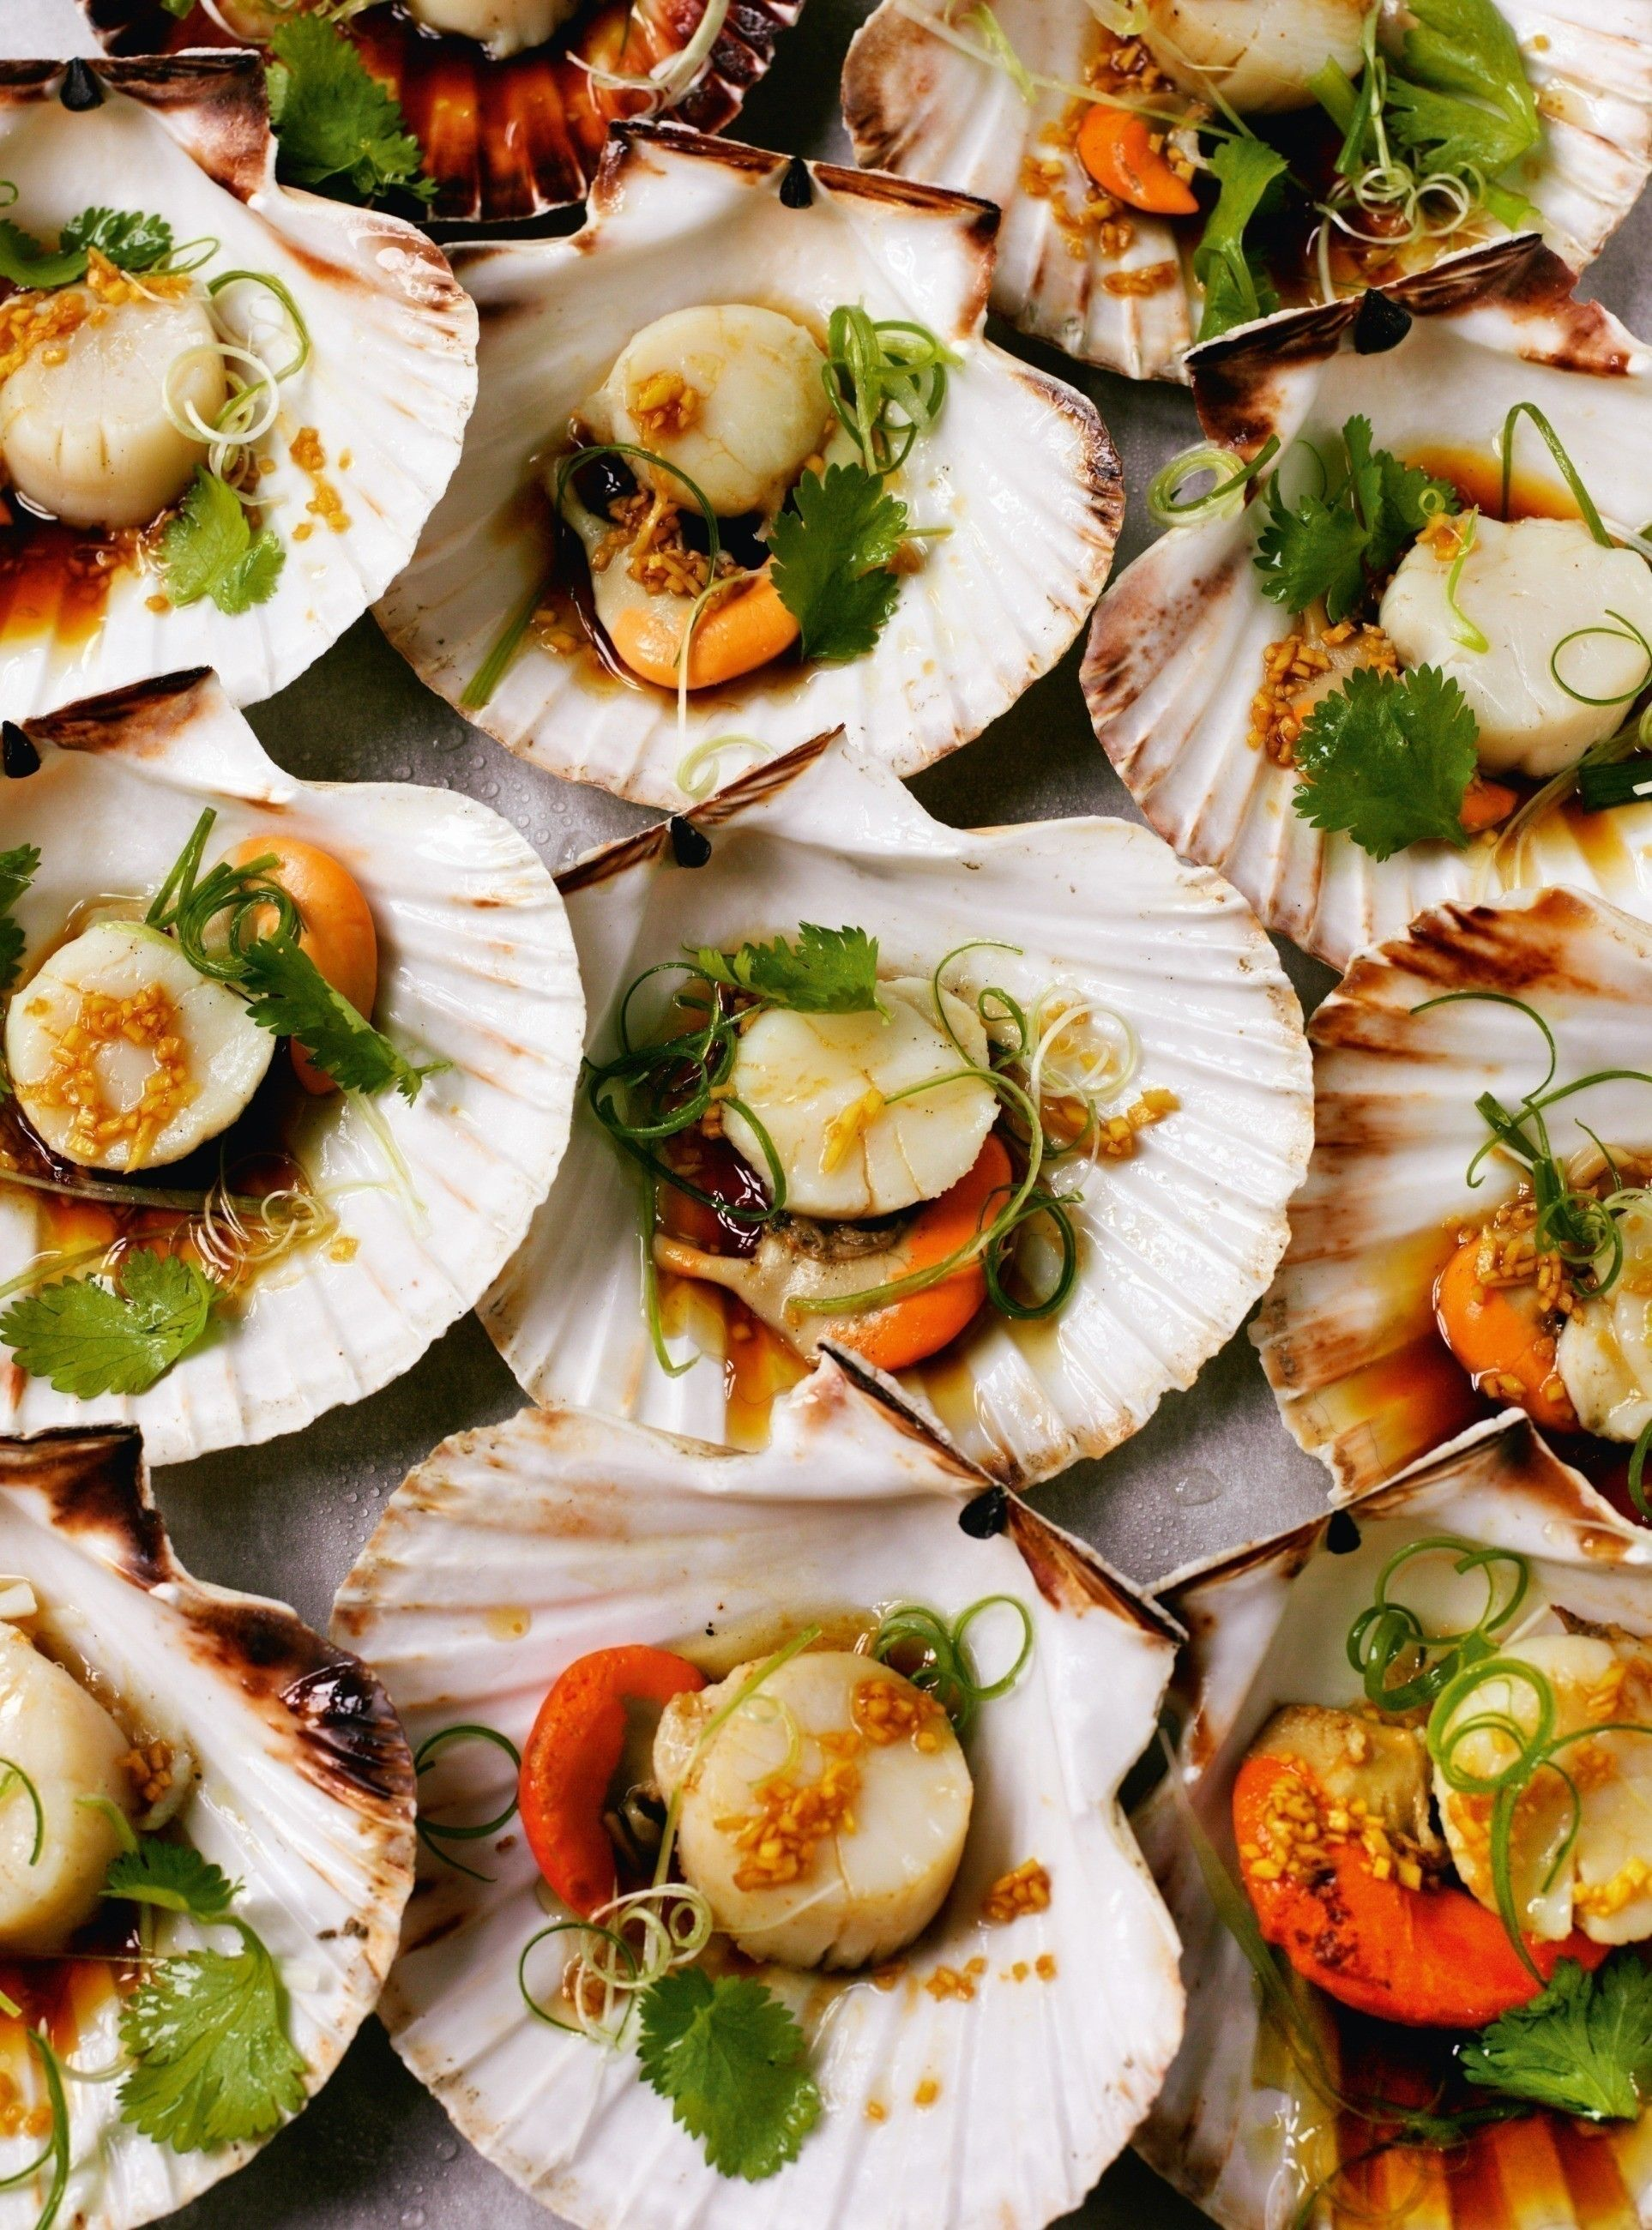 Rick Stein S Fish Shellfish Free Tutorial With Pictures On How To Cook A Scallop In Under 35 Minutes By Cooking W Spring Onion Recipes Cooking Seafood Food